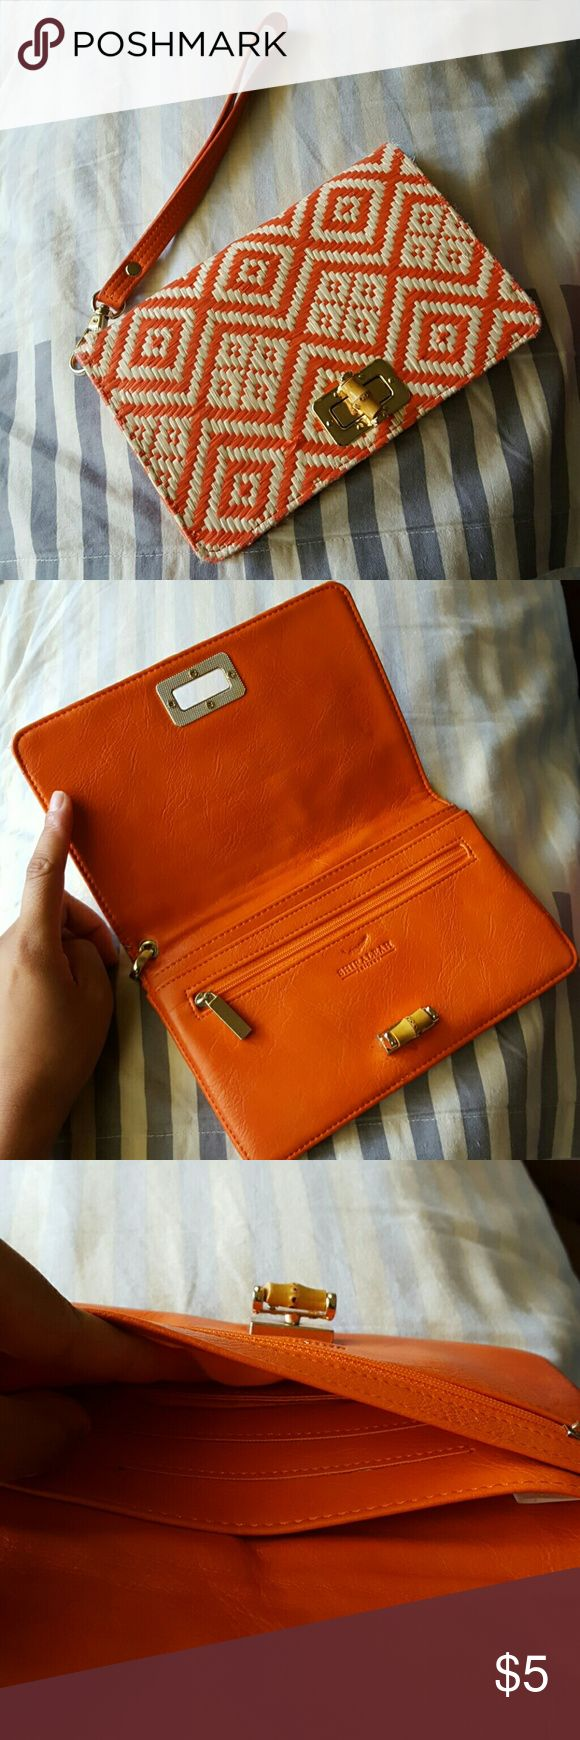 Orange Clutch from Ann Taylor Orange straw wristlet from Ann Taylor - slight flaws when purchased, see last 3 pictures. Otherwise they are unnoticeable. Has slots for credit cards and can fit a phone. Ann Taylor Bags Clutches & Wristlets